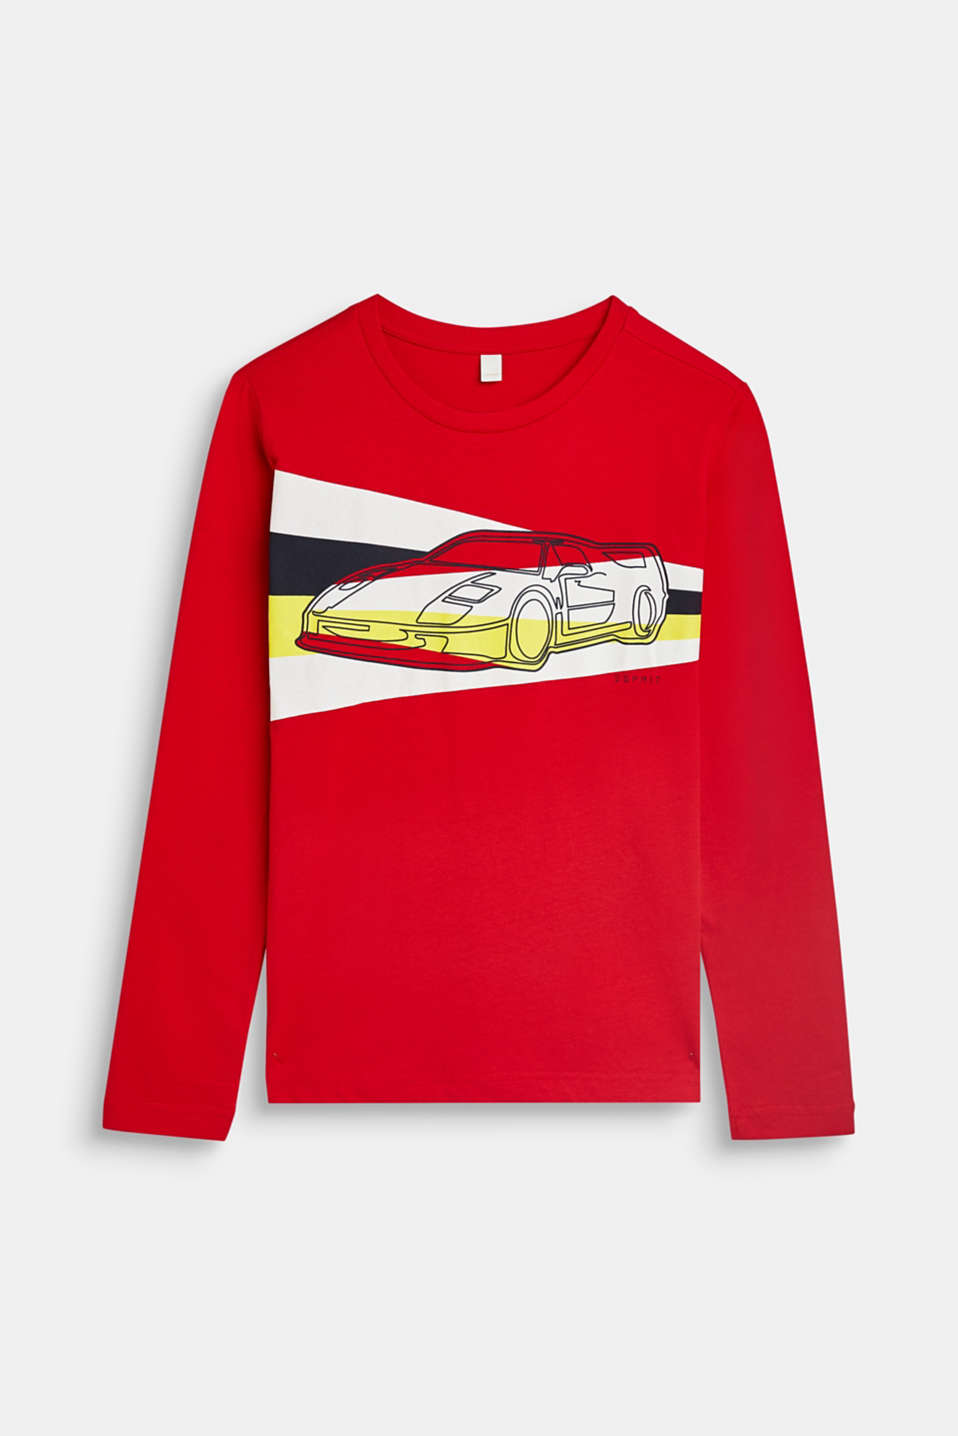 Esprit - Long sleeve top with a racing car print